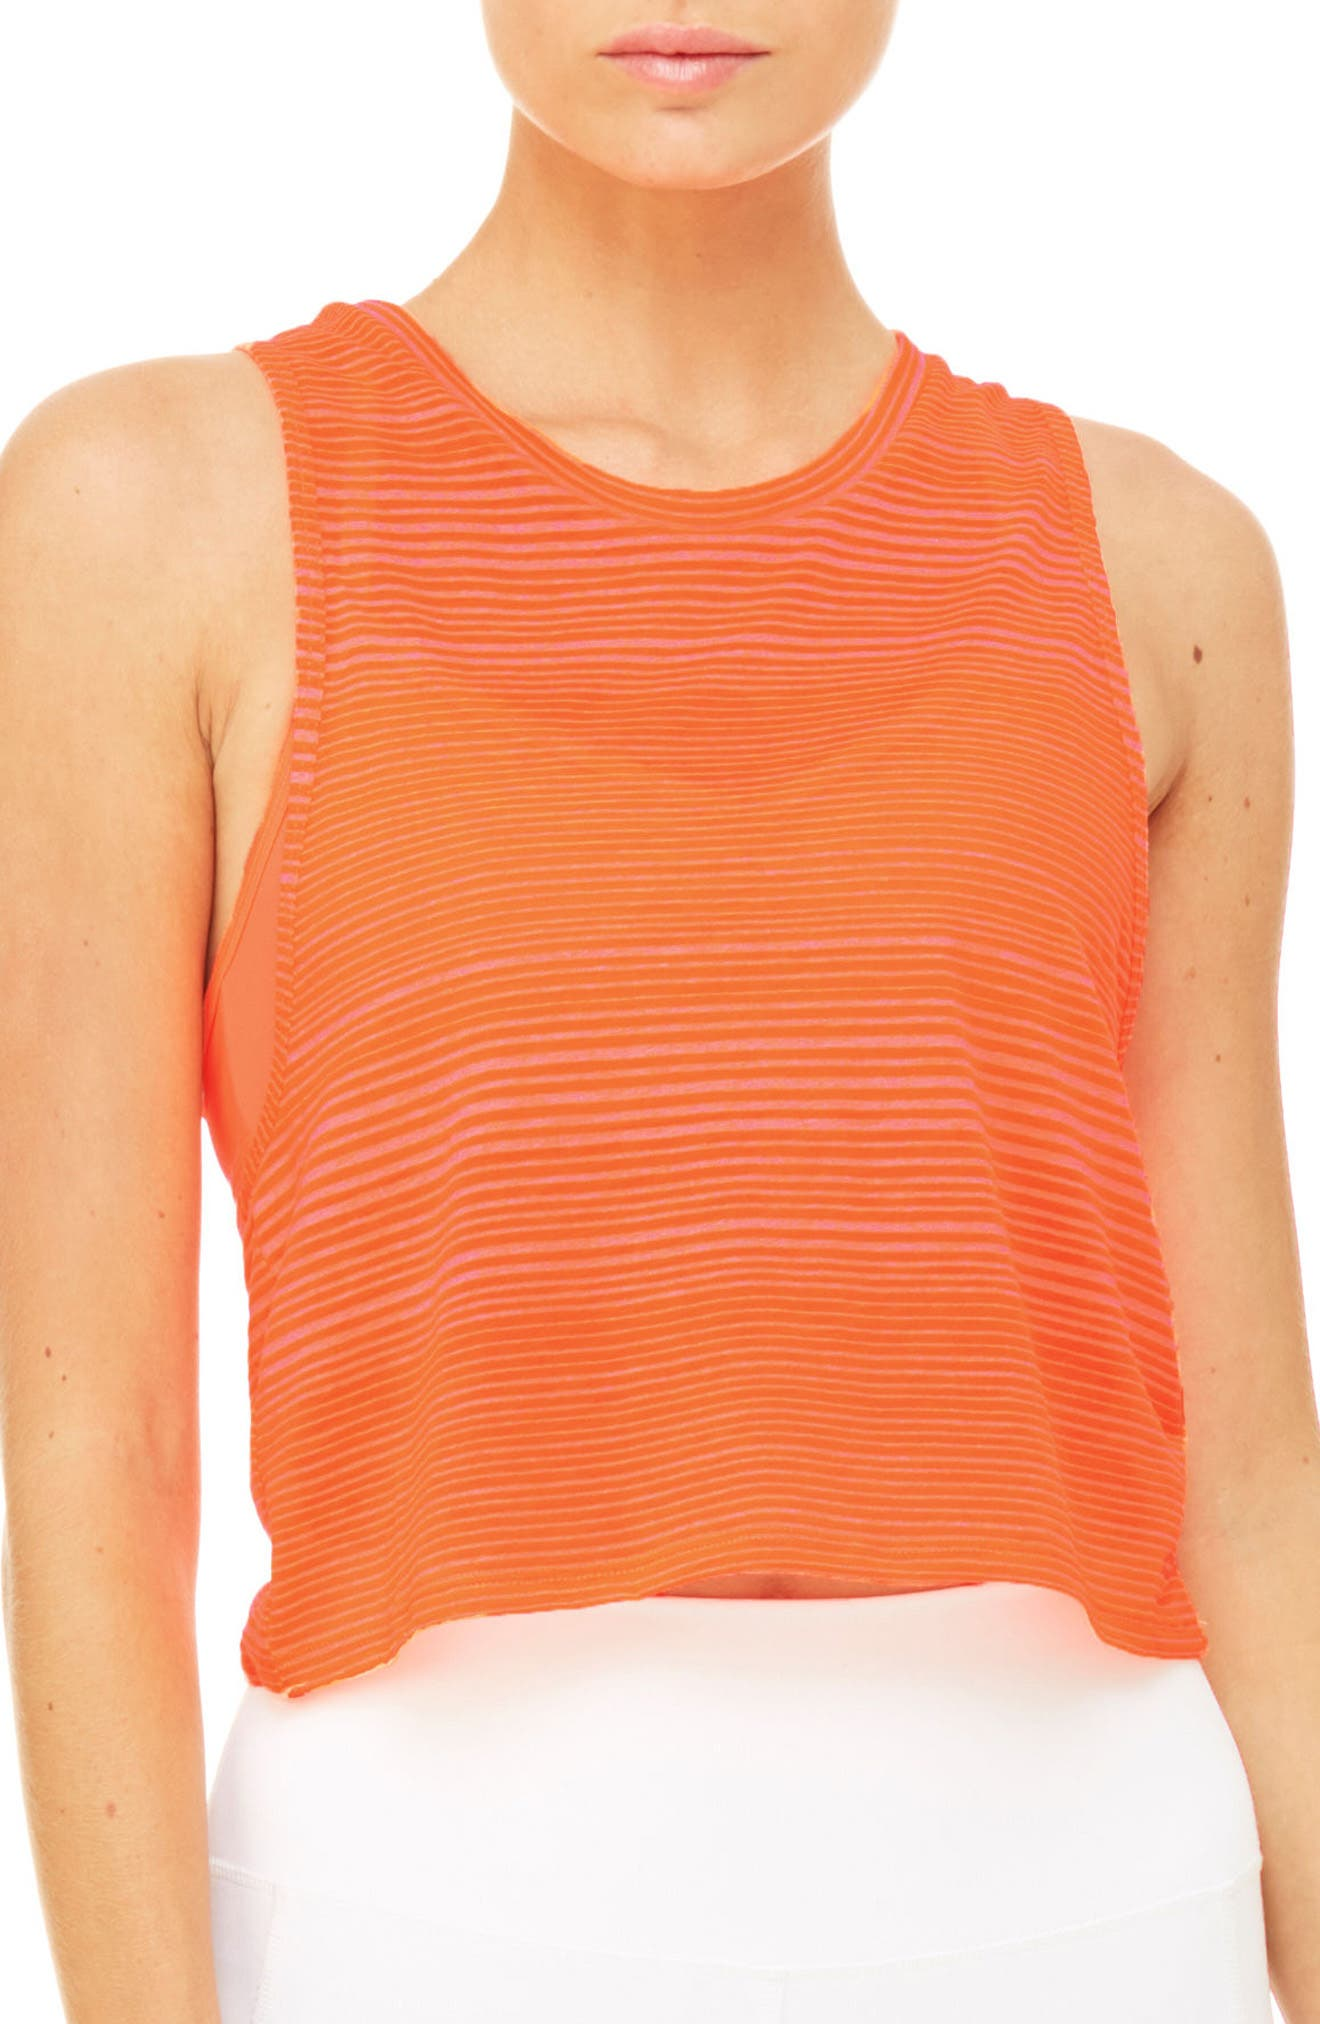 Alternate Image 1 Selected - Alo Track Crop Tank